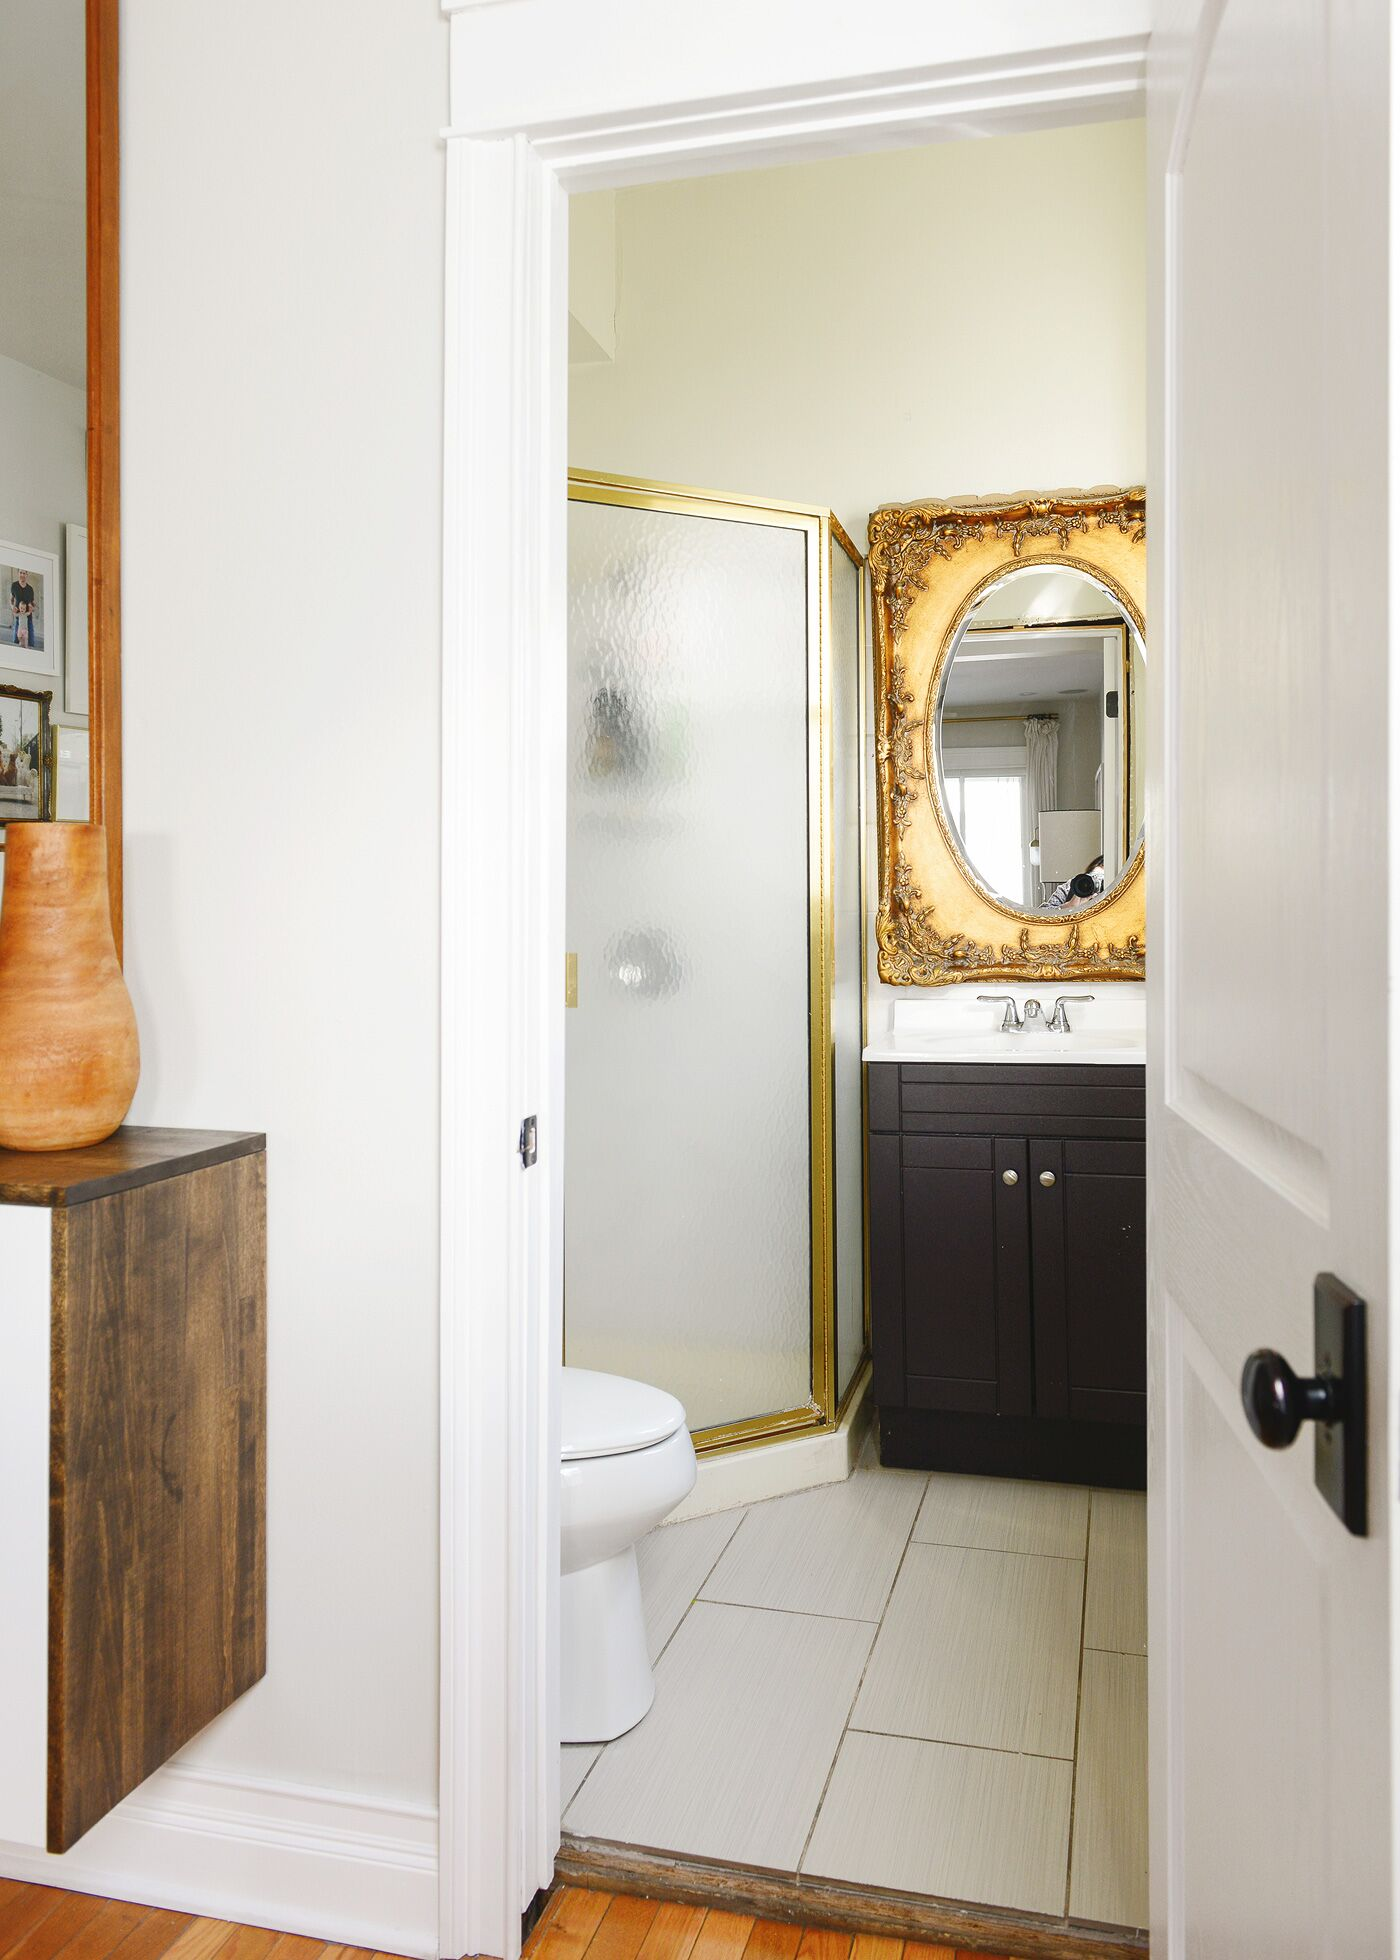 Recently renovated bathroom with gold vintage mirror